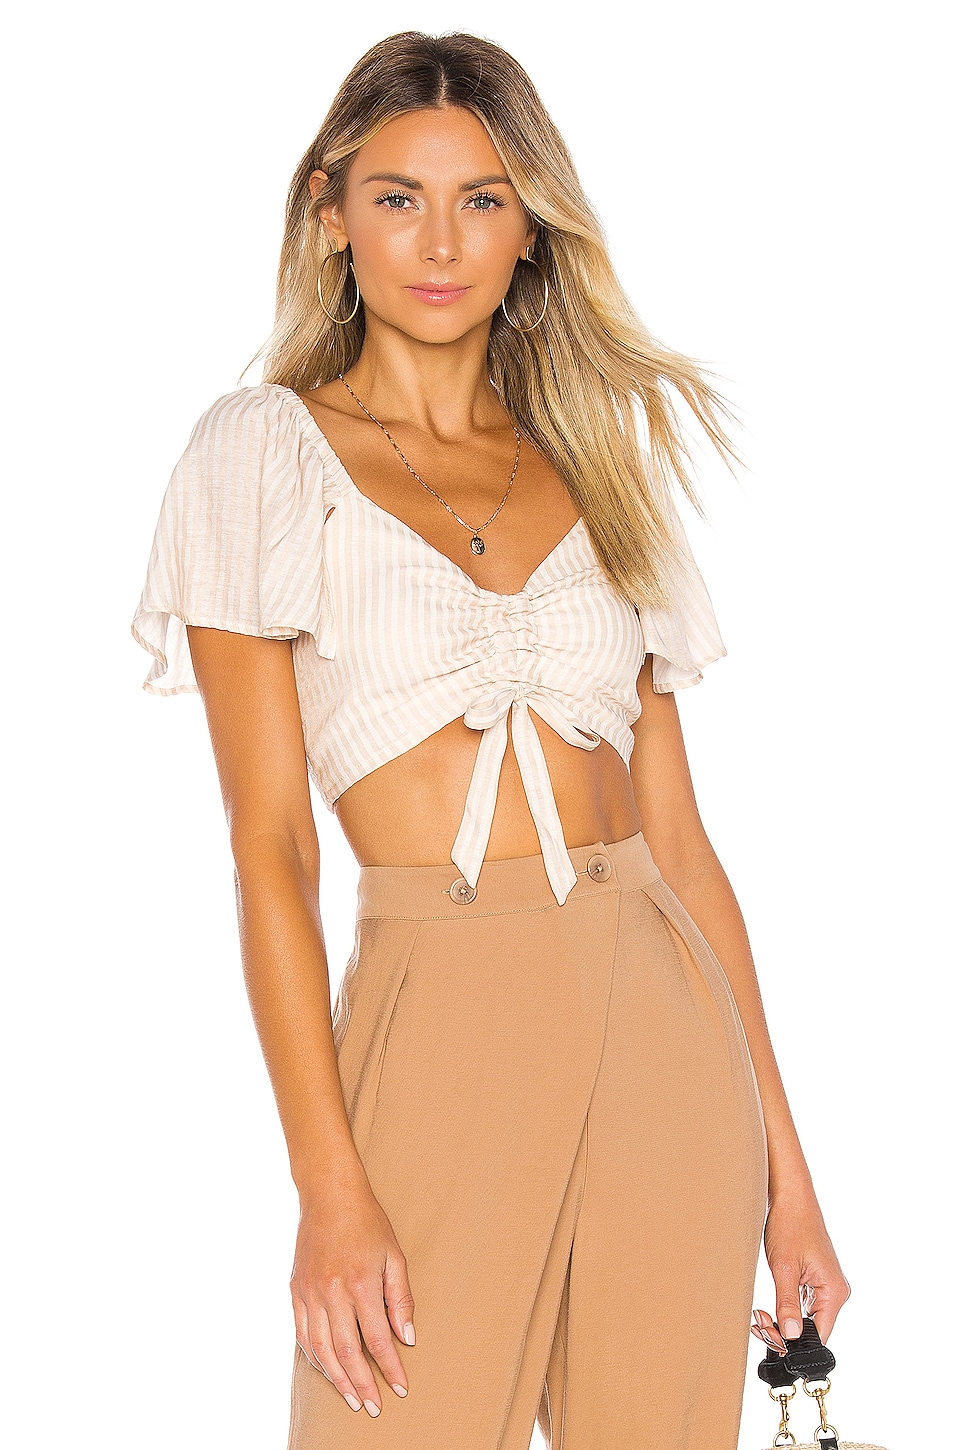 House of Harlow 1960 x REVOLVE Brisa Top in Ivory